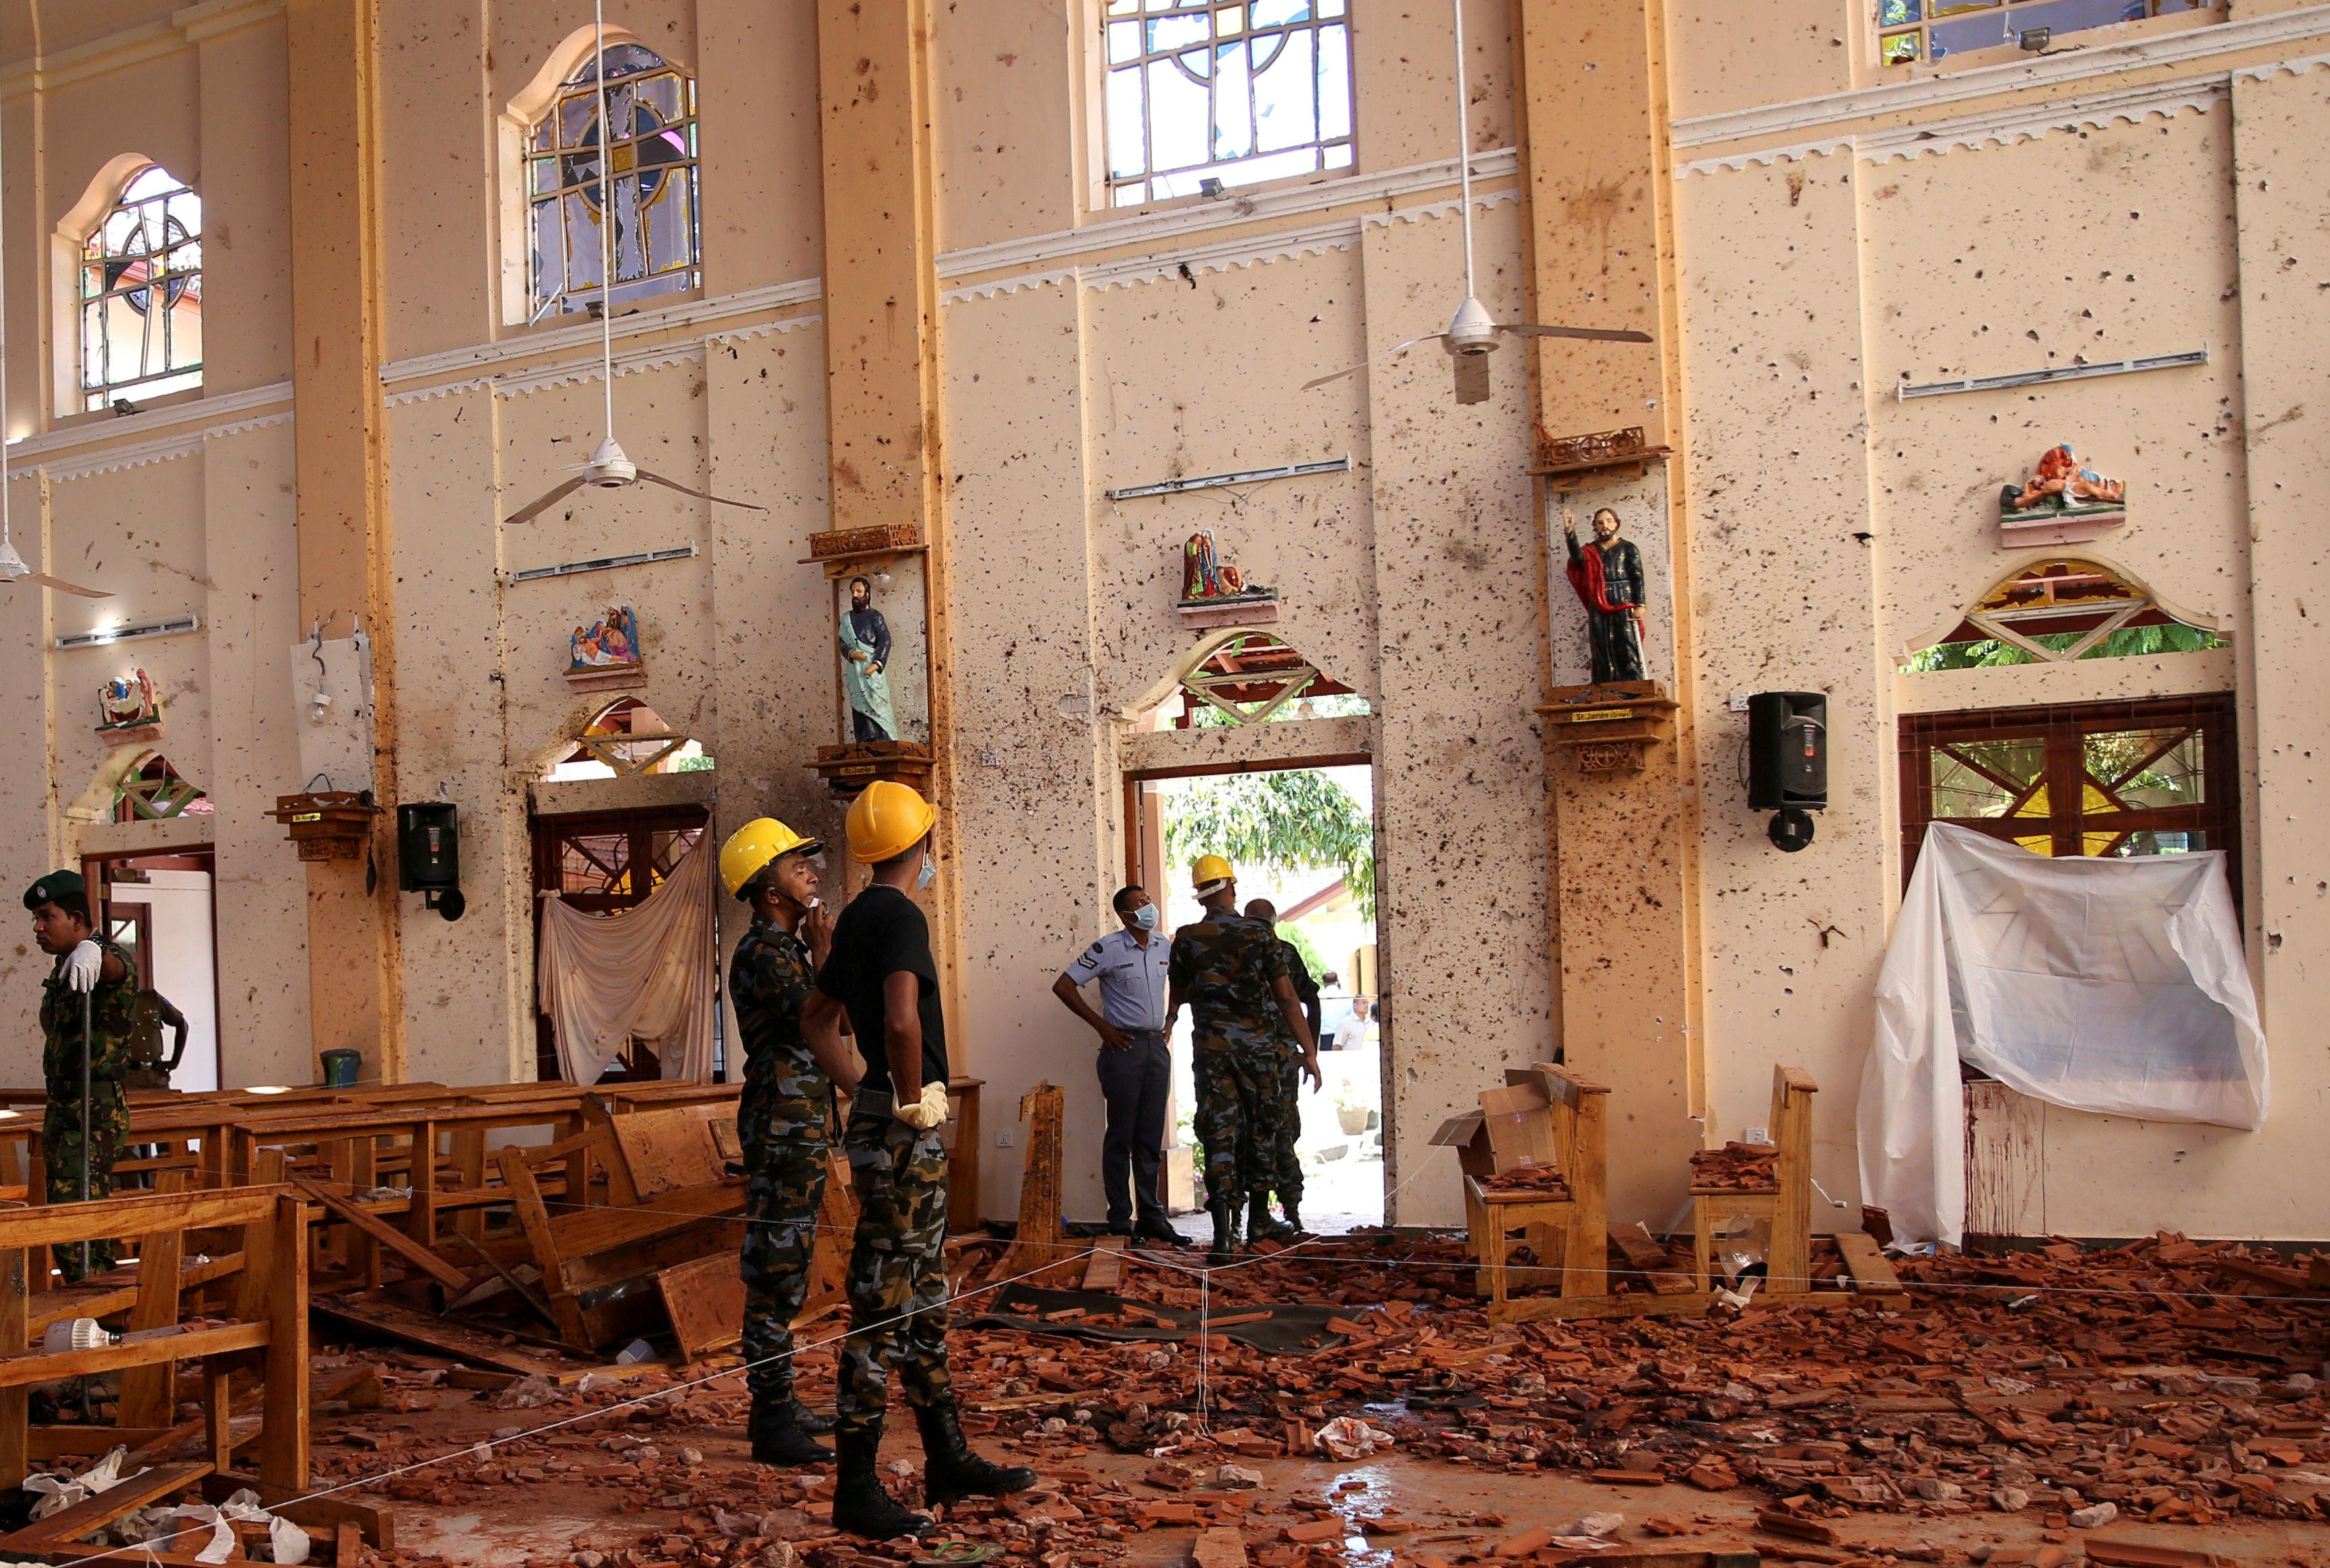 Sri Lanka authorities were warned of attacks two weeks ago, says minister